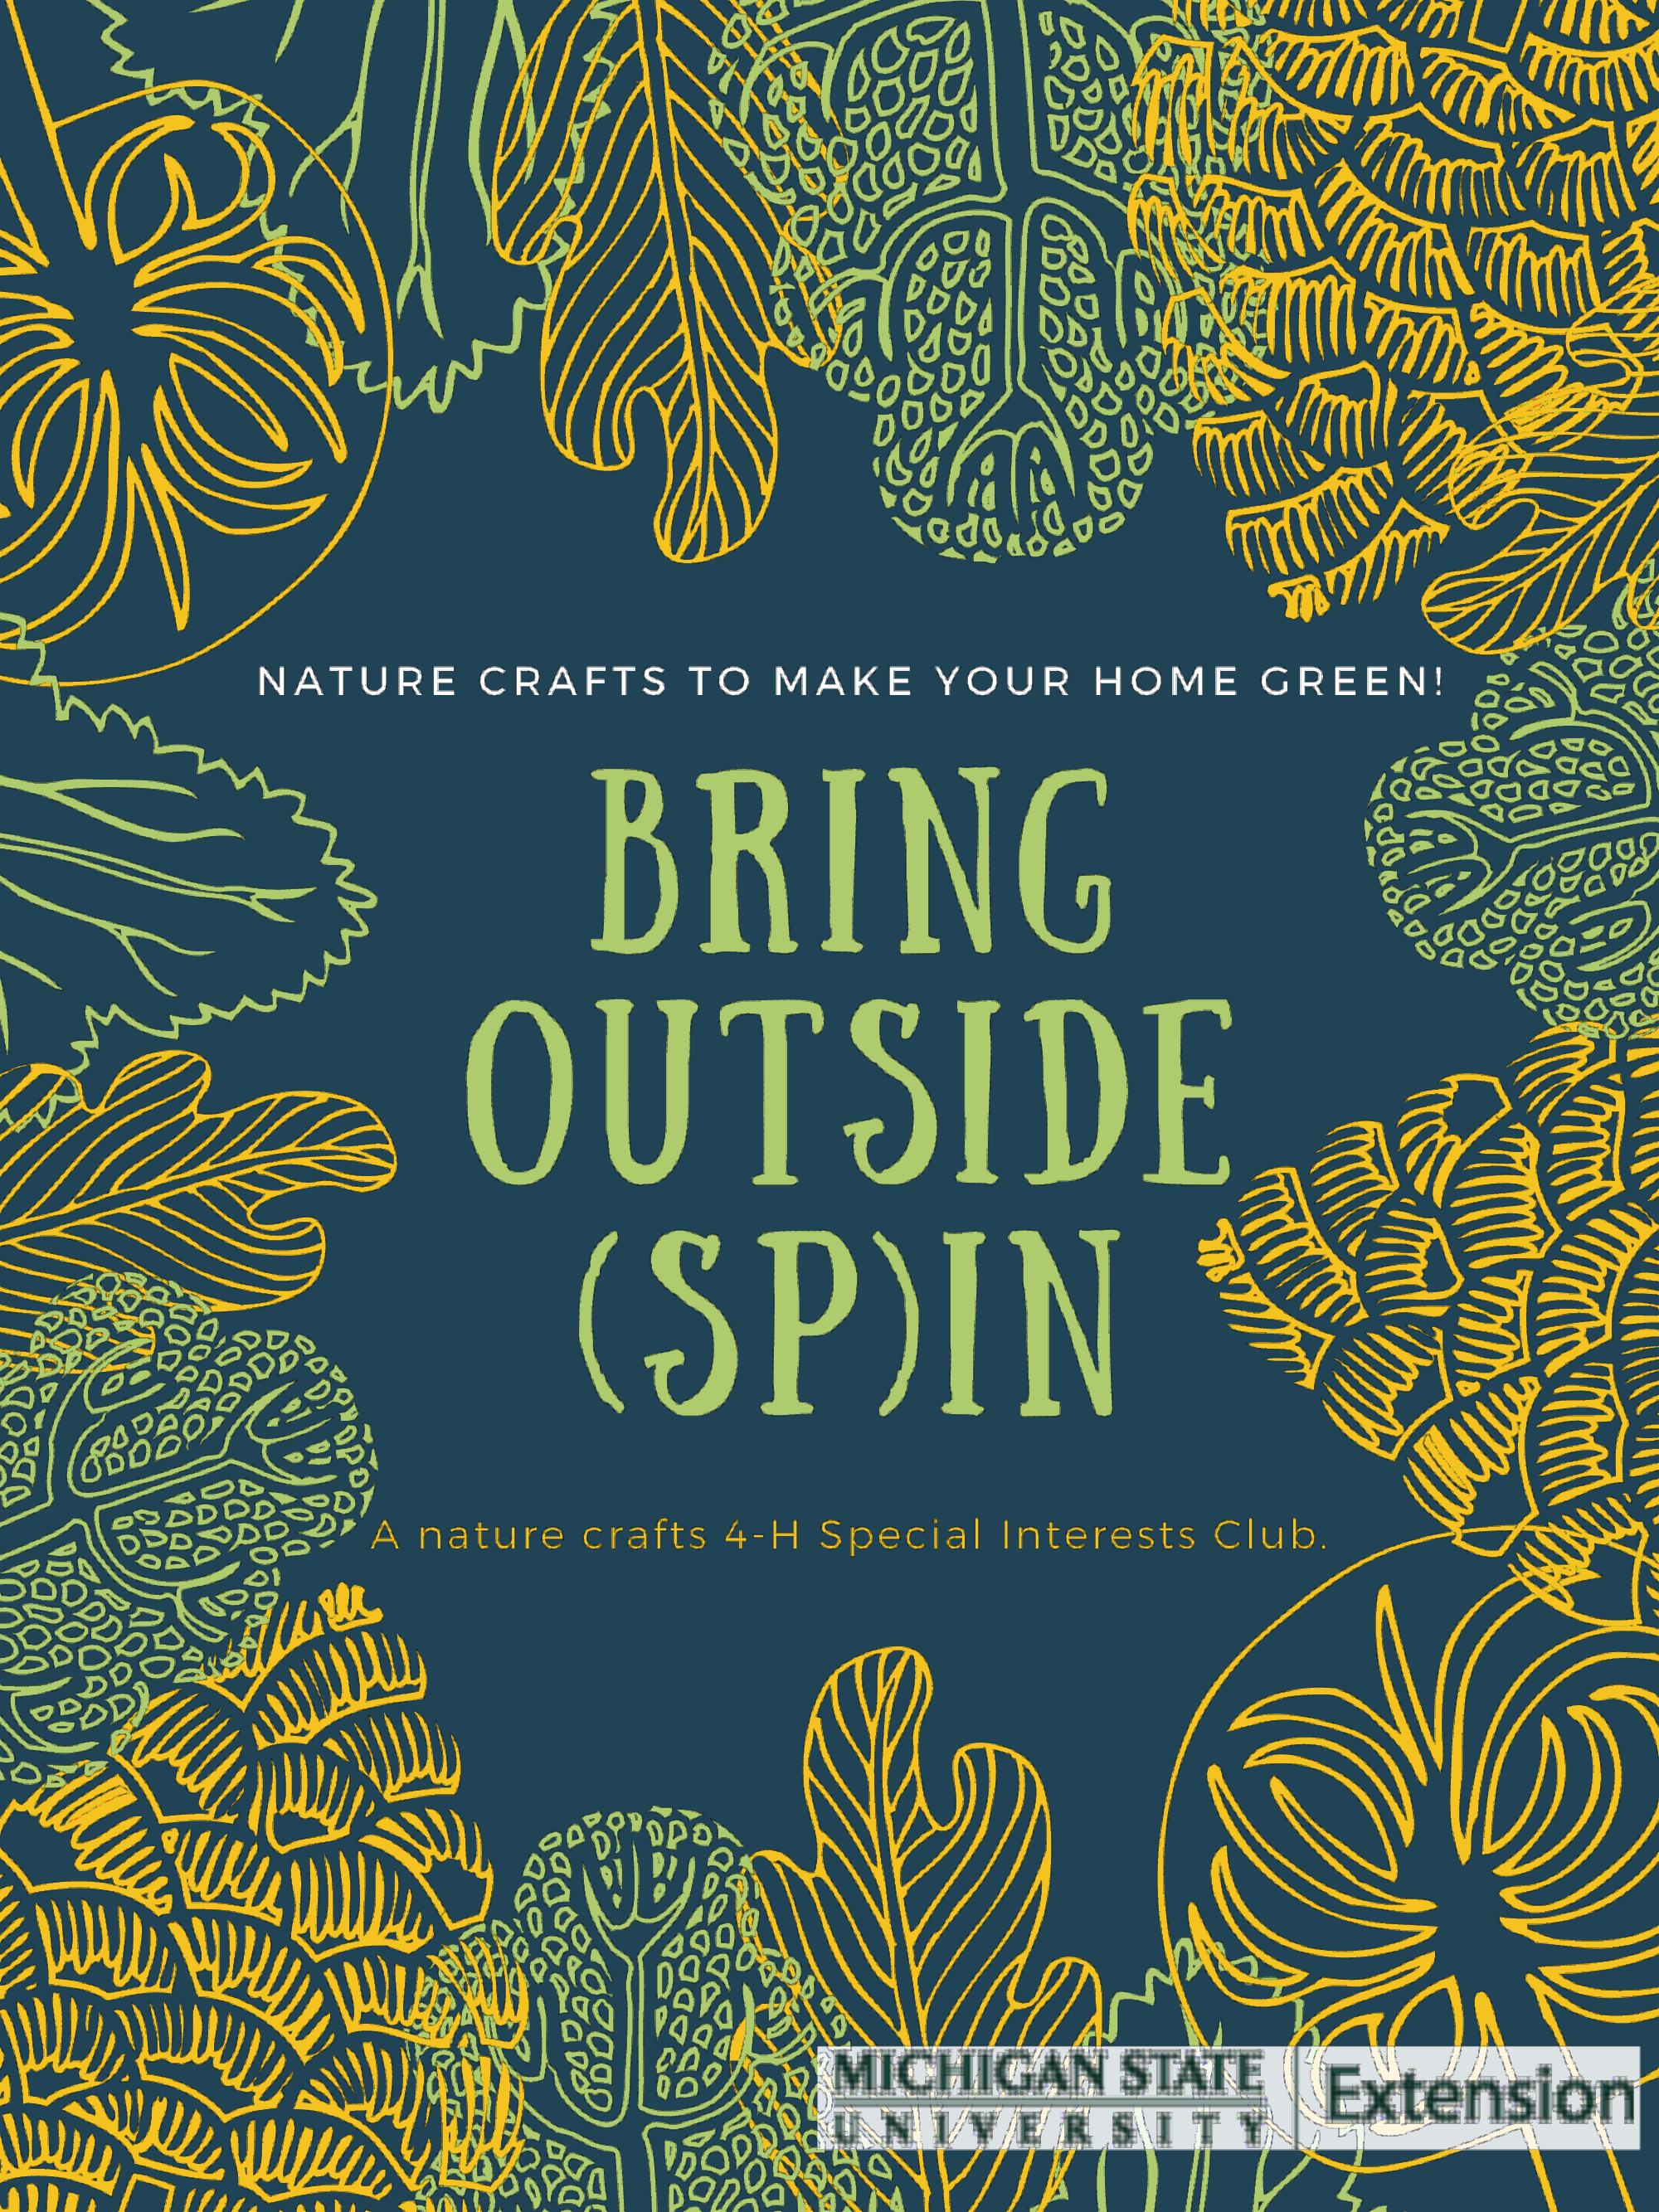 Bring out spin logo.